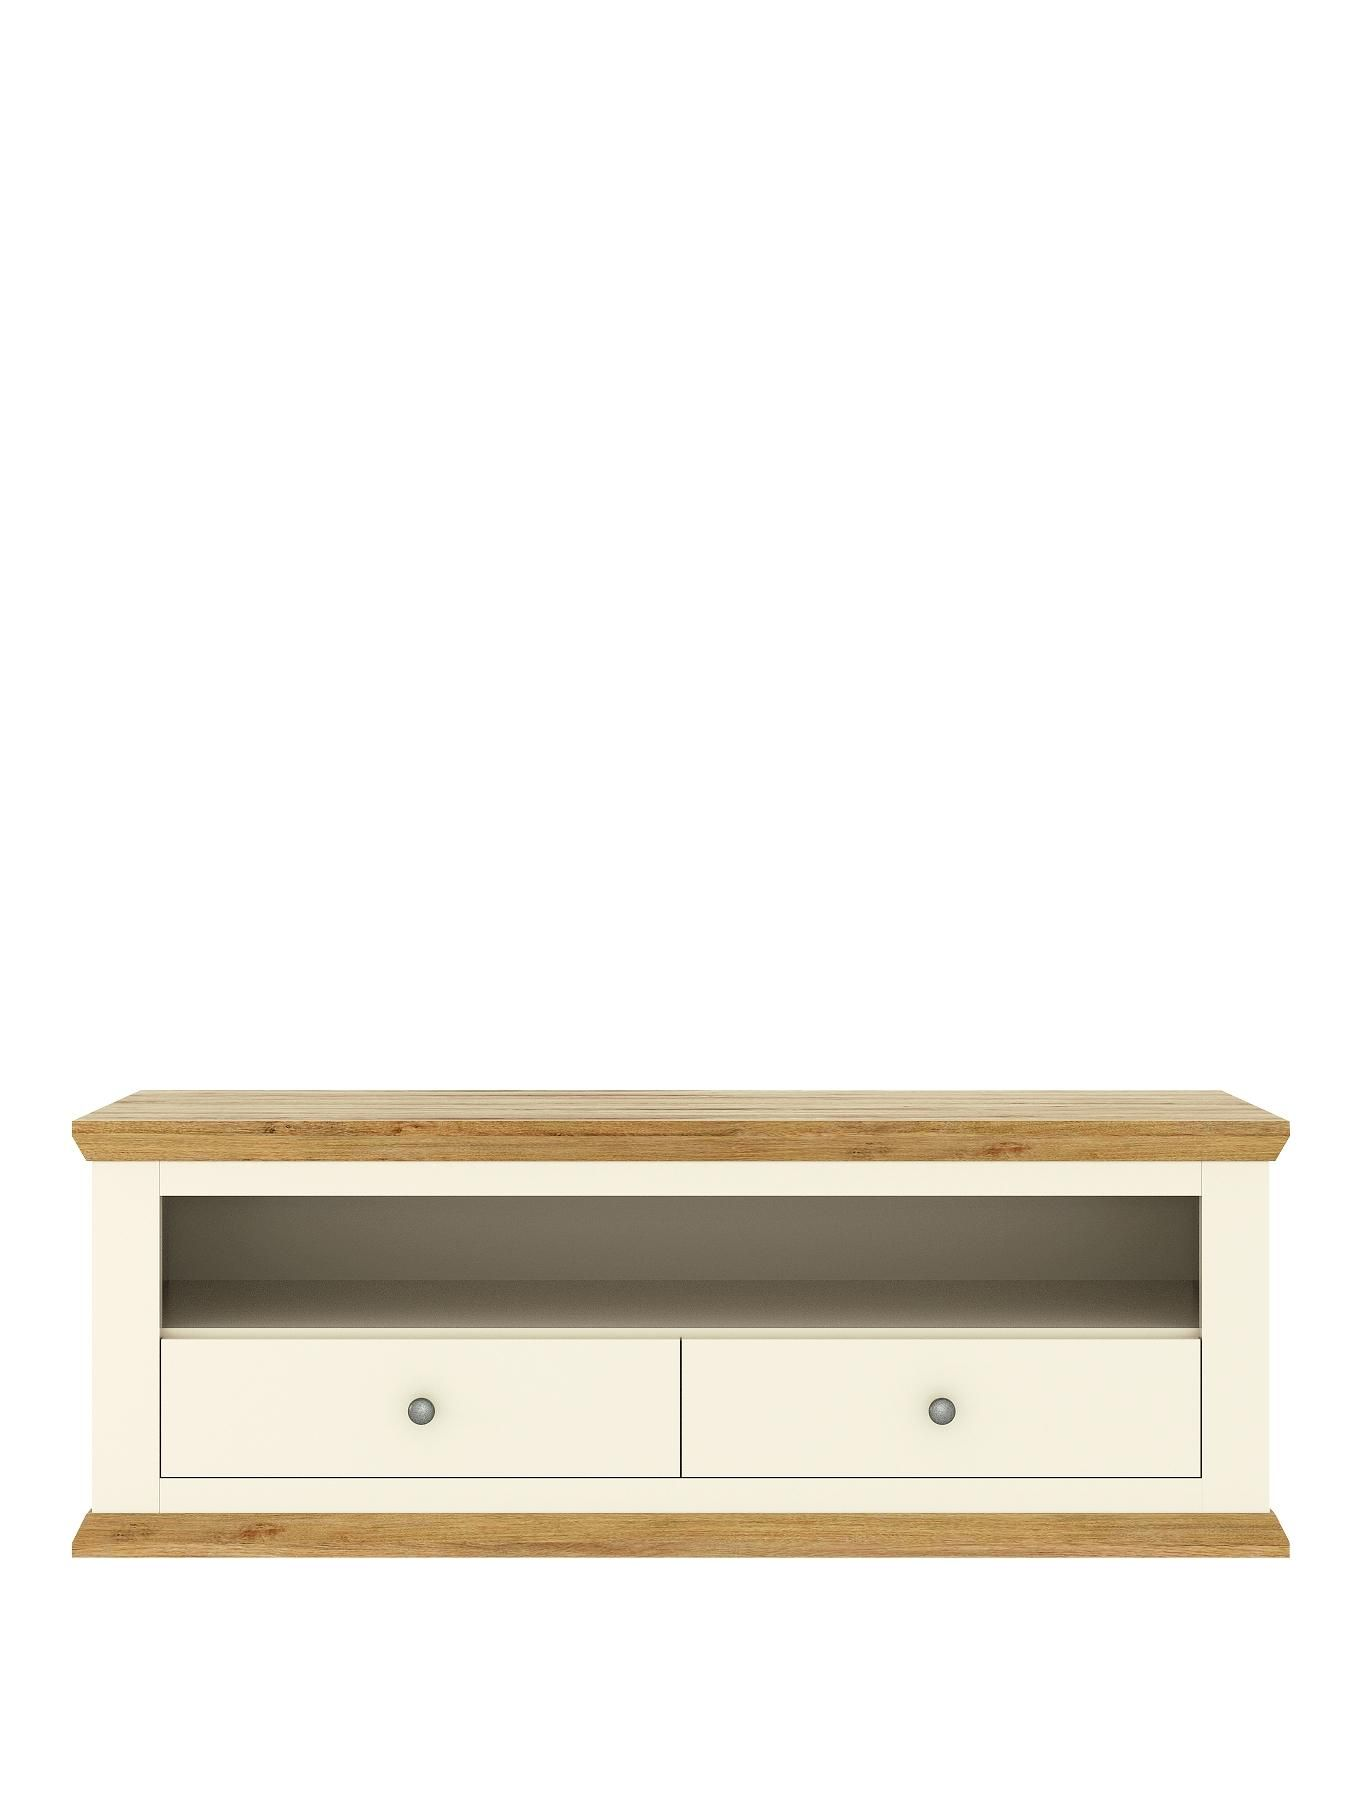 Womens Mens And Kids Fashion Furniture Electricals More Tv Unit Country Cottage Style The Unit